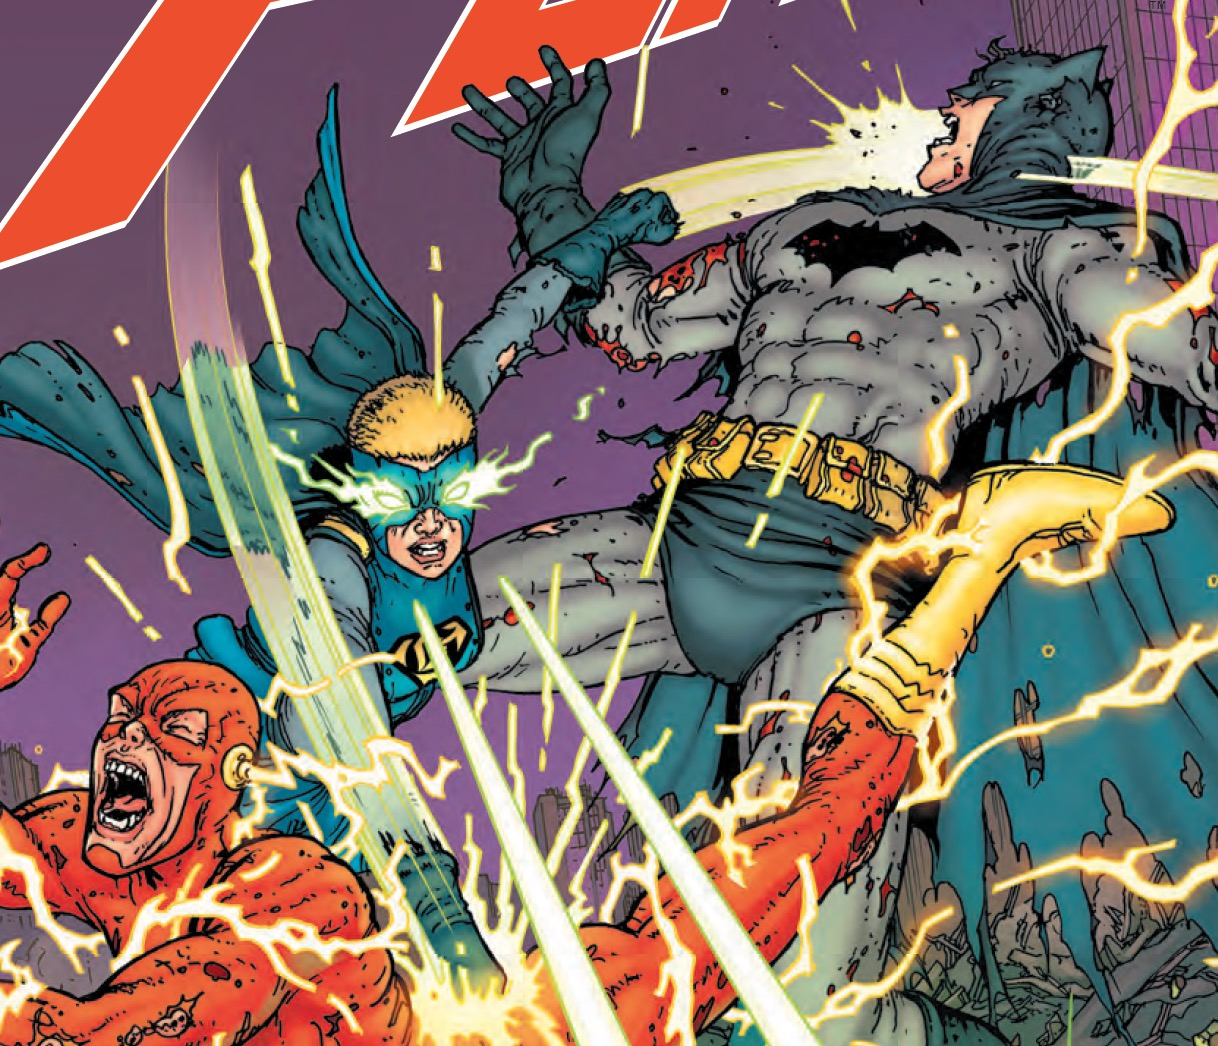 Great art and two big superhero fights makes this quite entertaining.